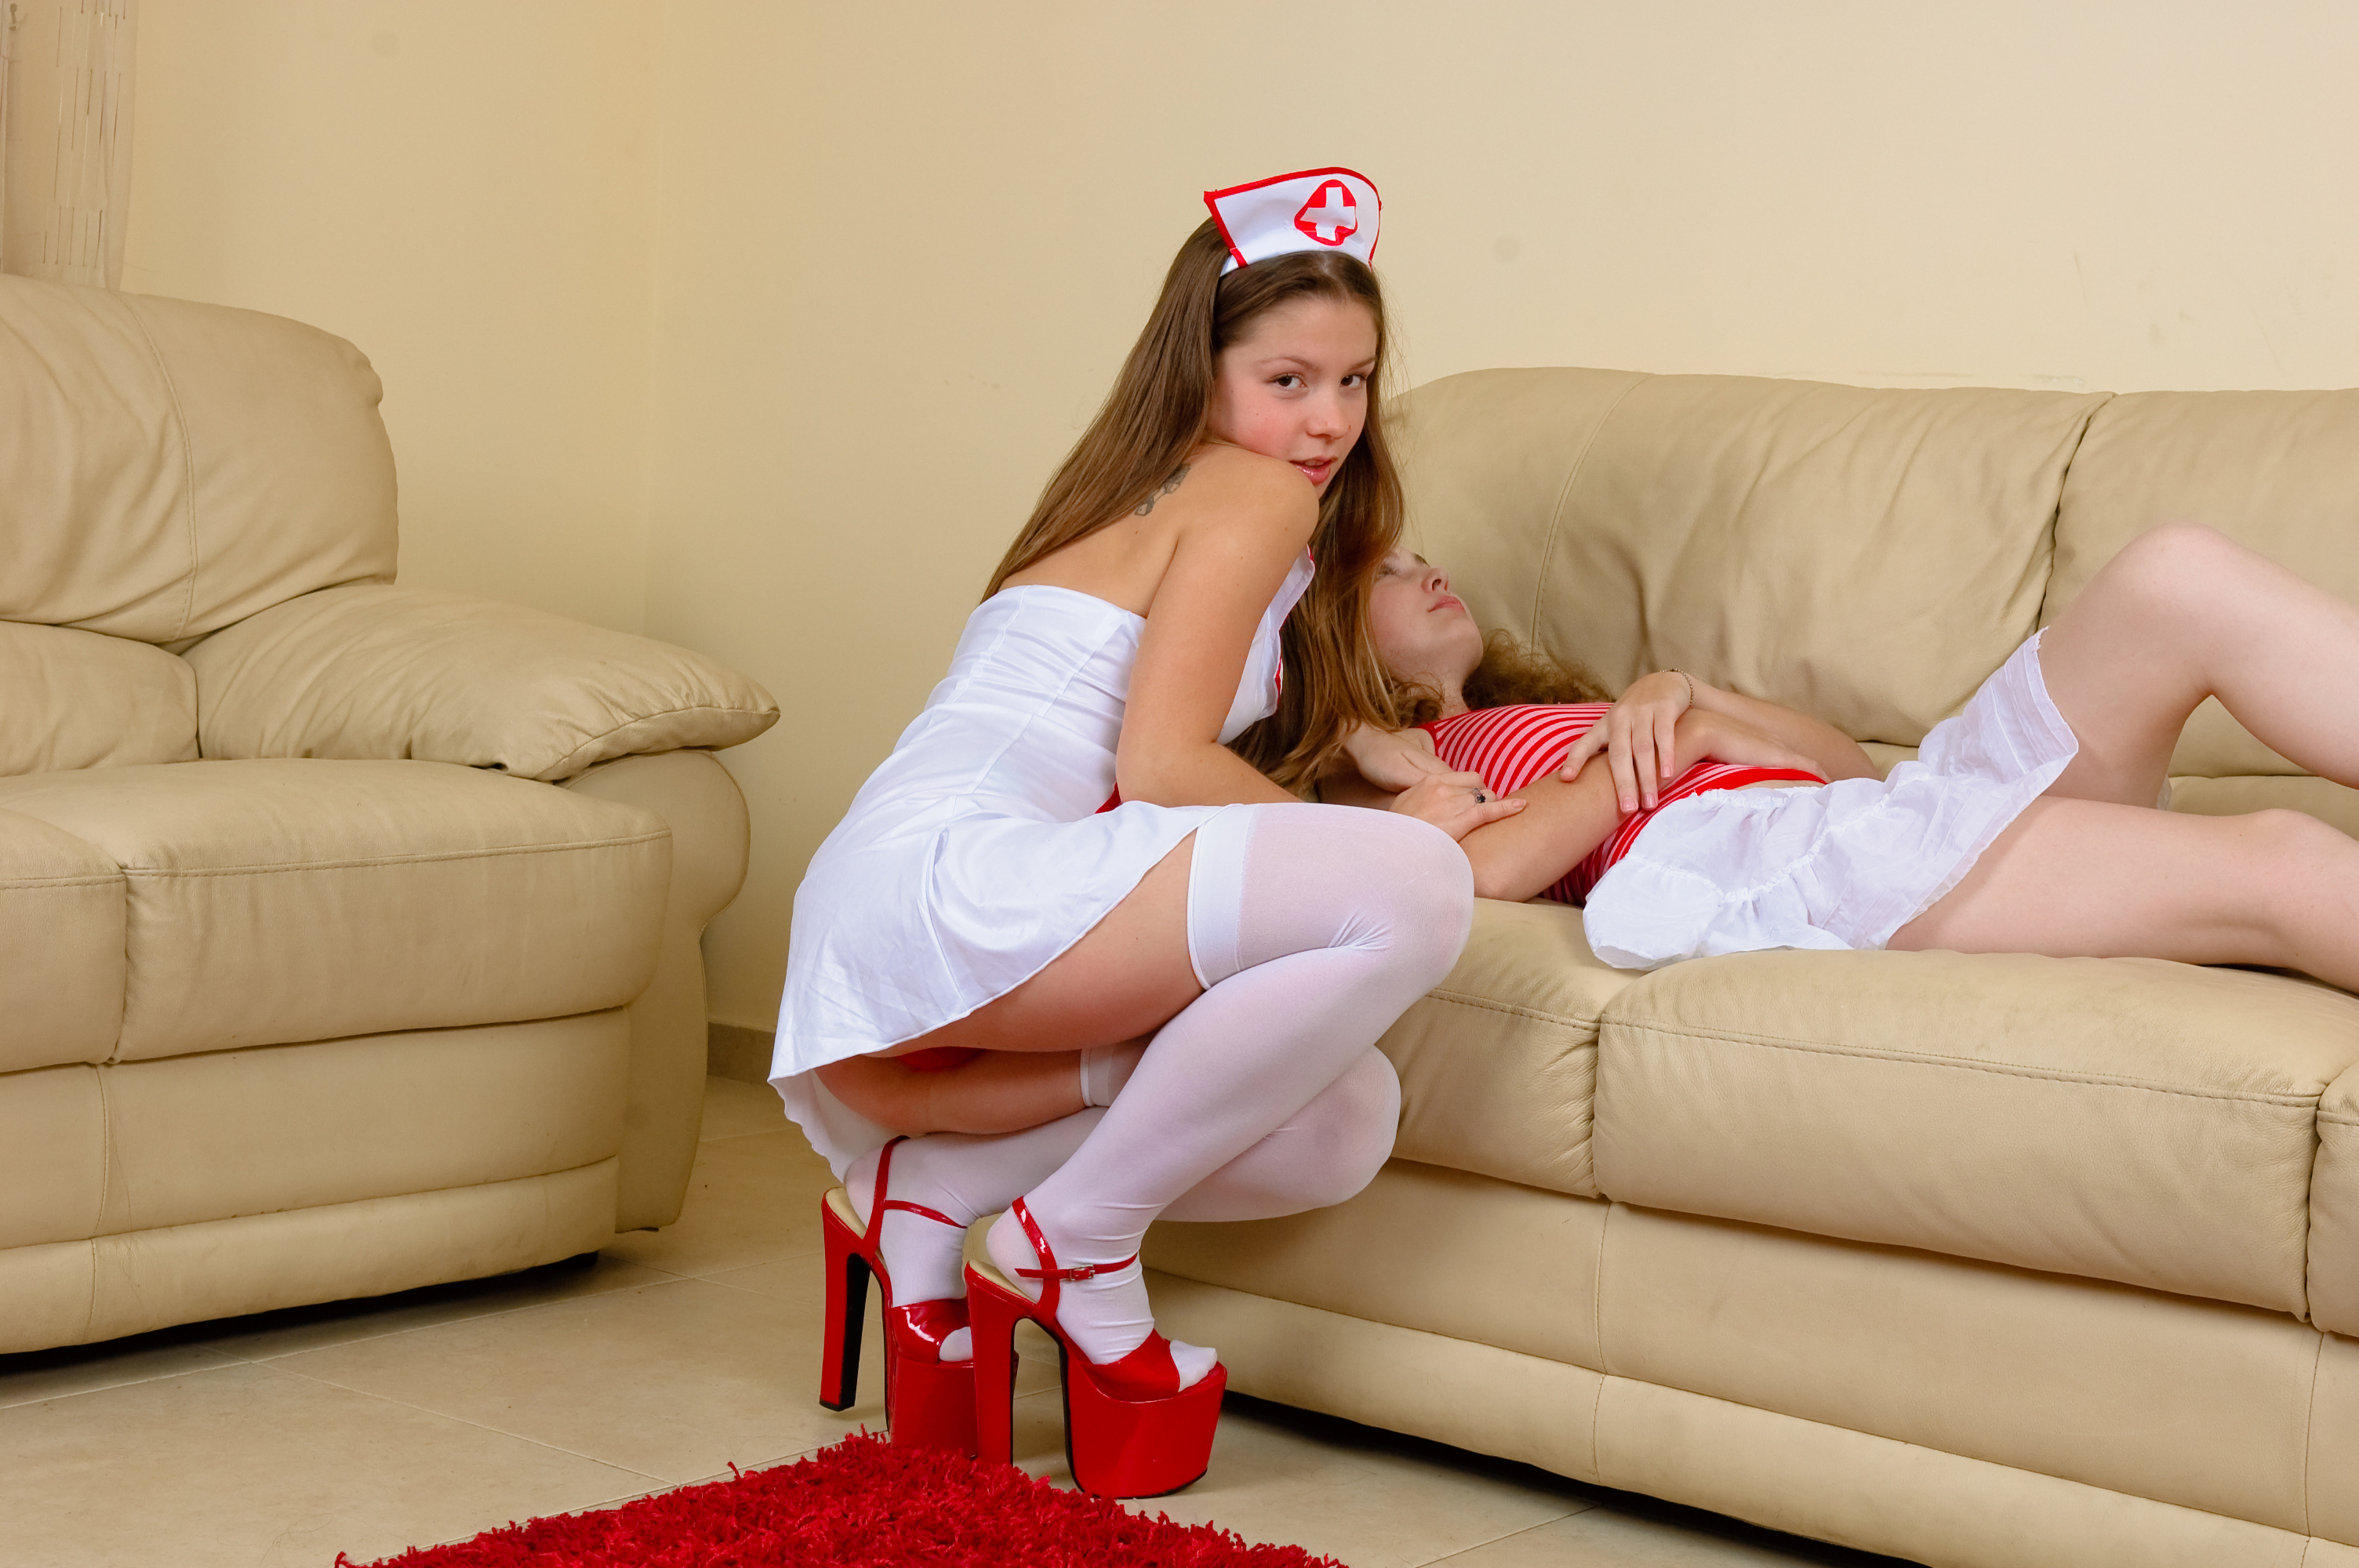 Emily 18 playing nurse with her patient - ImgPile